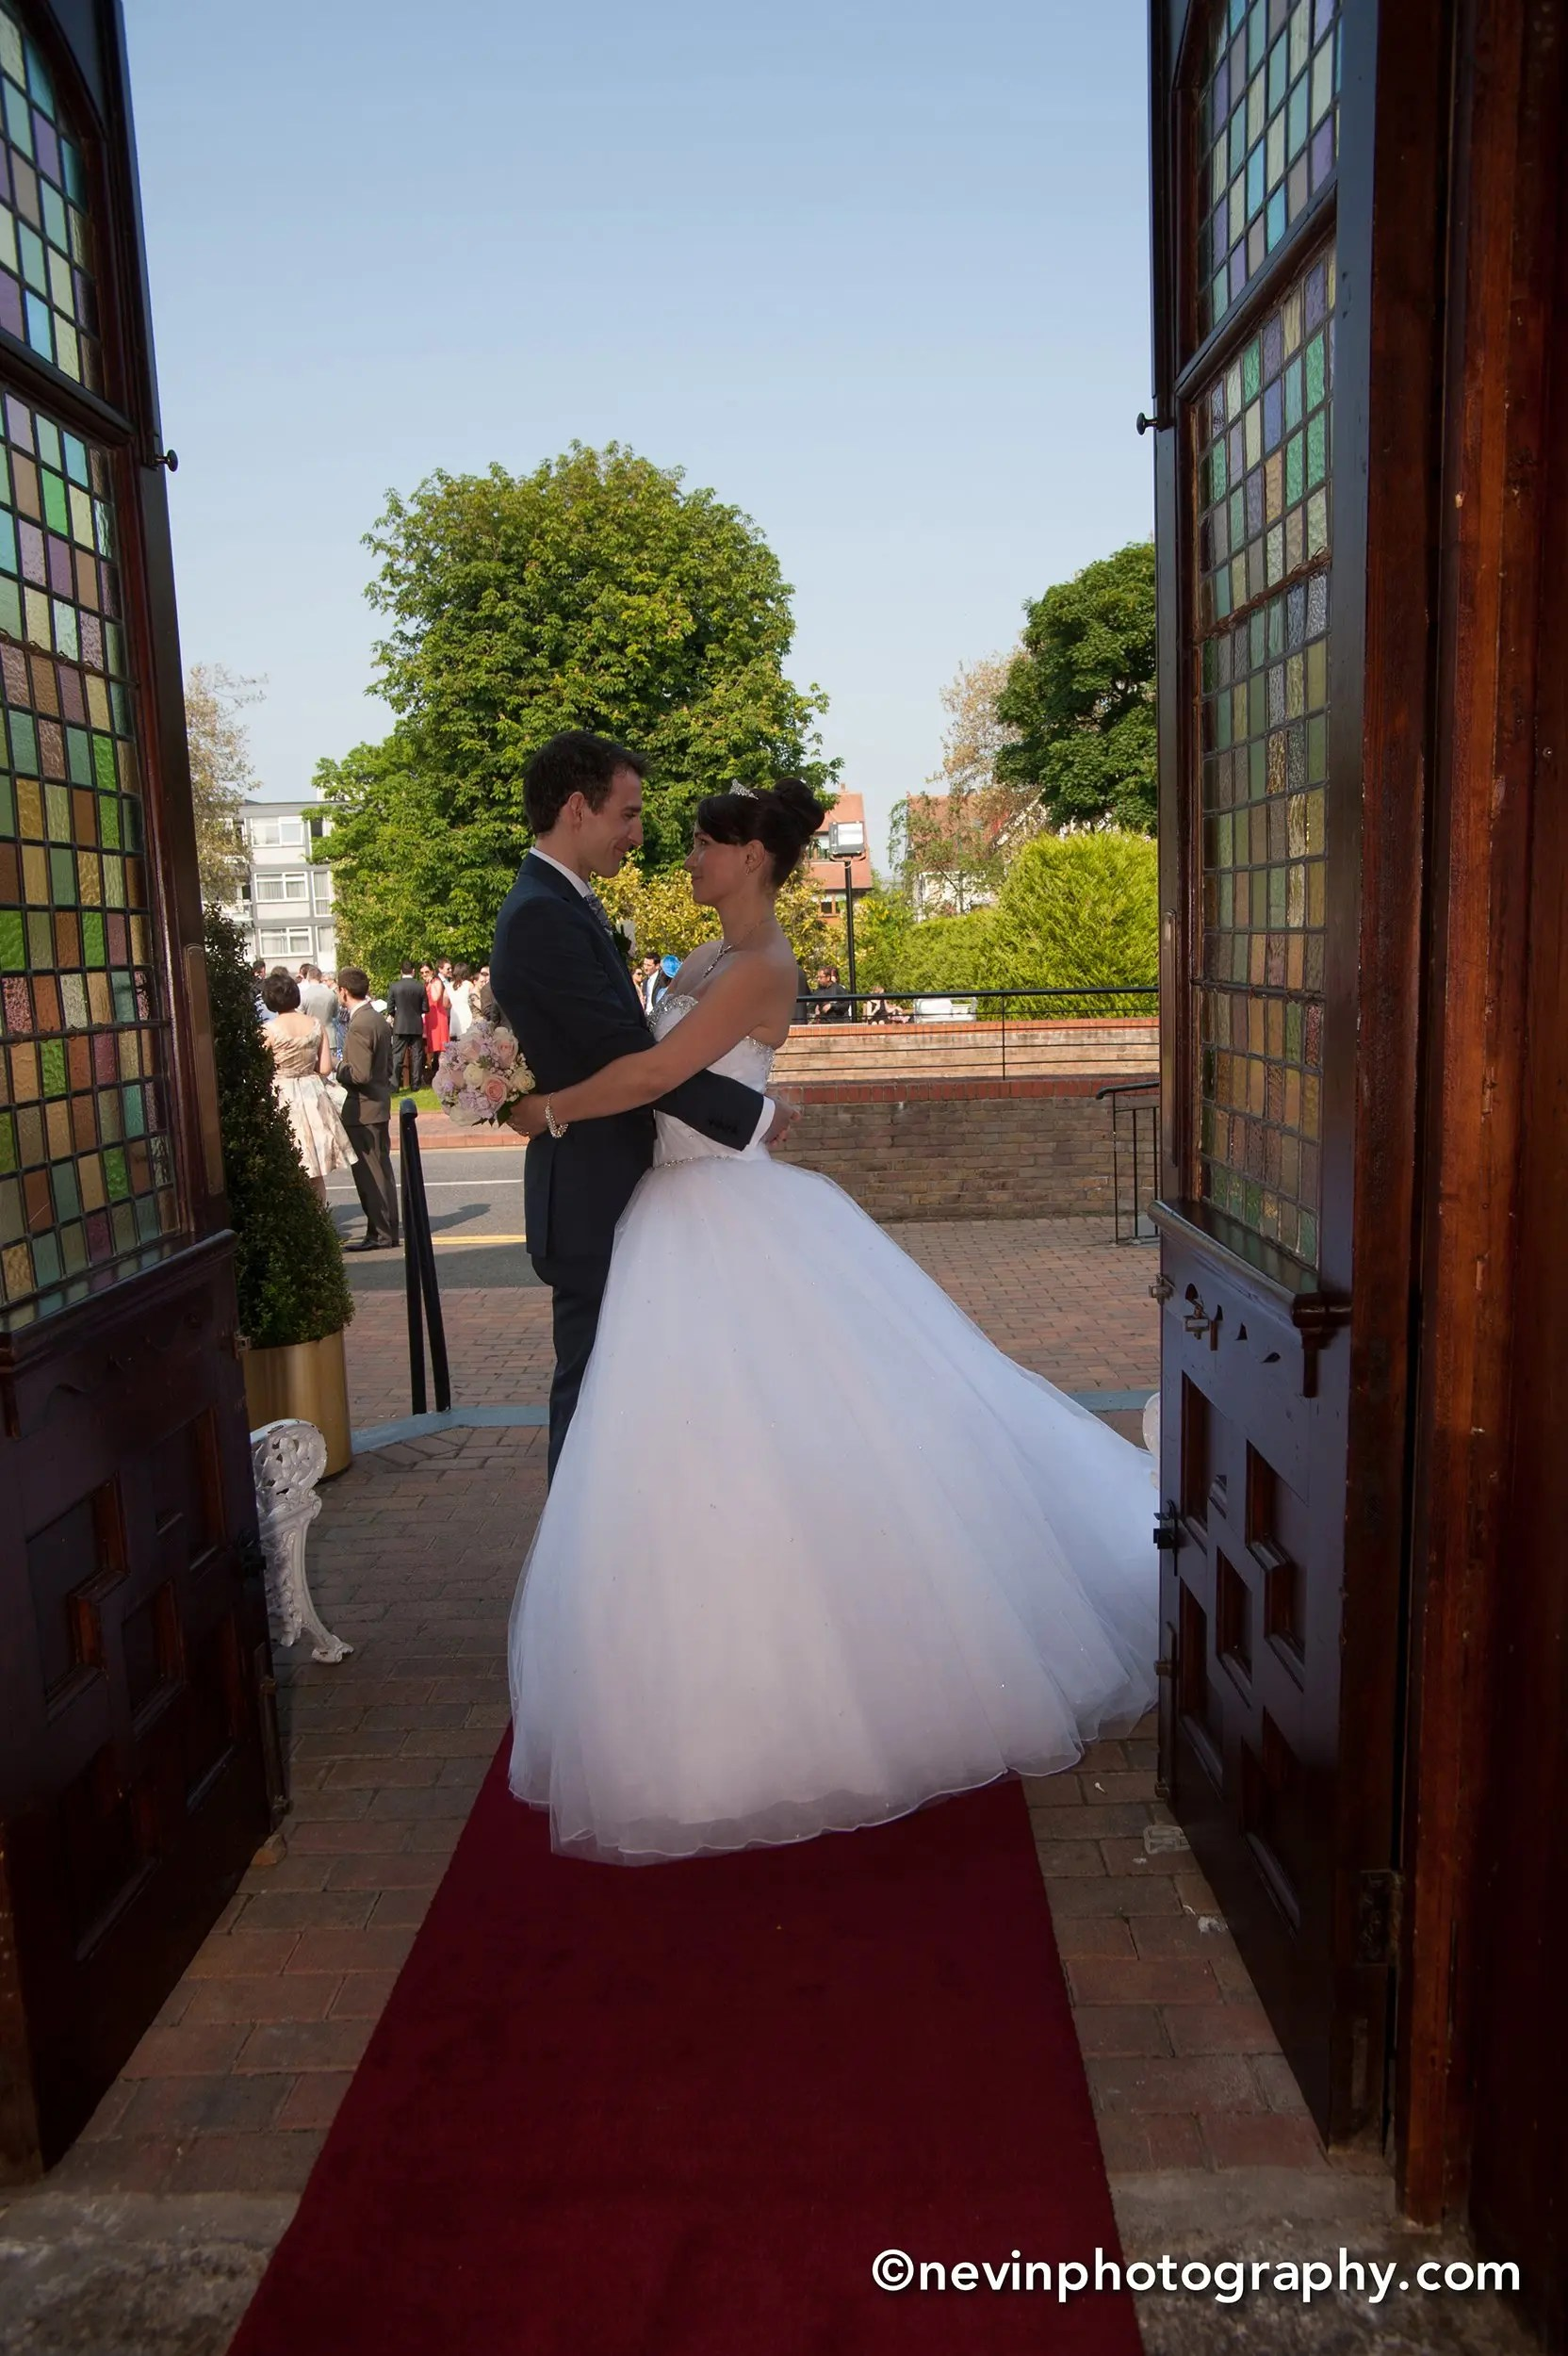 Bride and groom embrace at Thomas Prior Hall